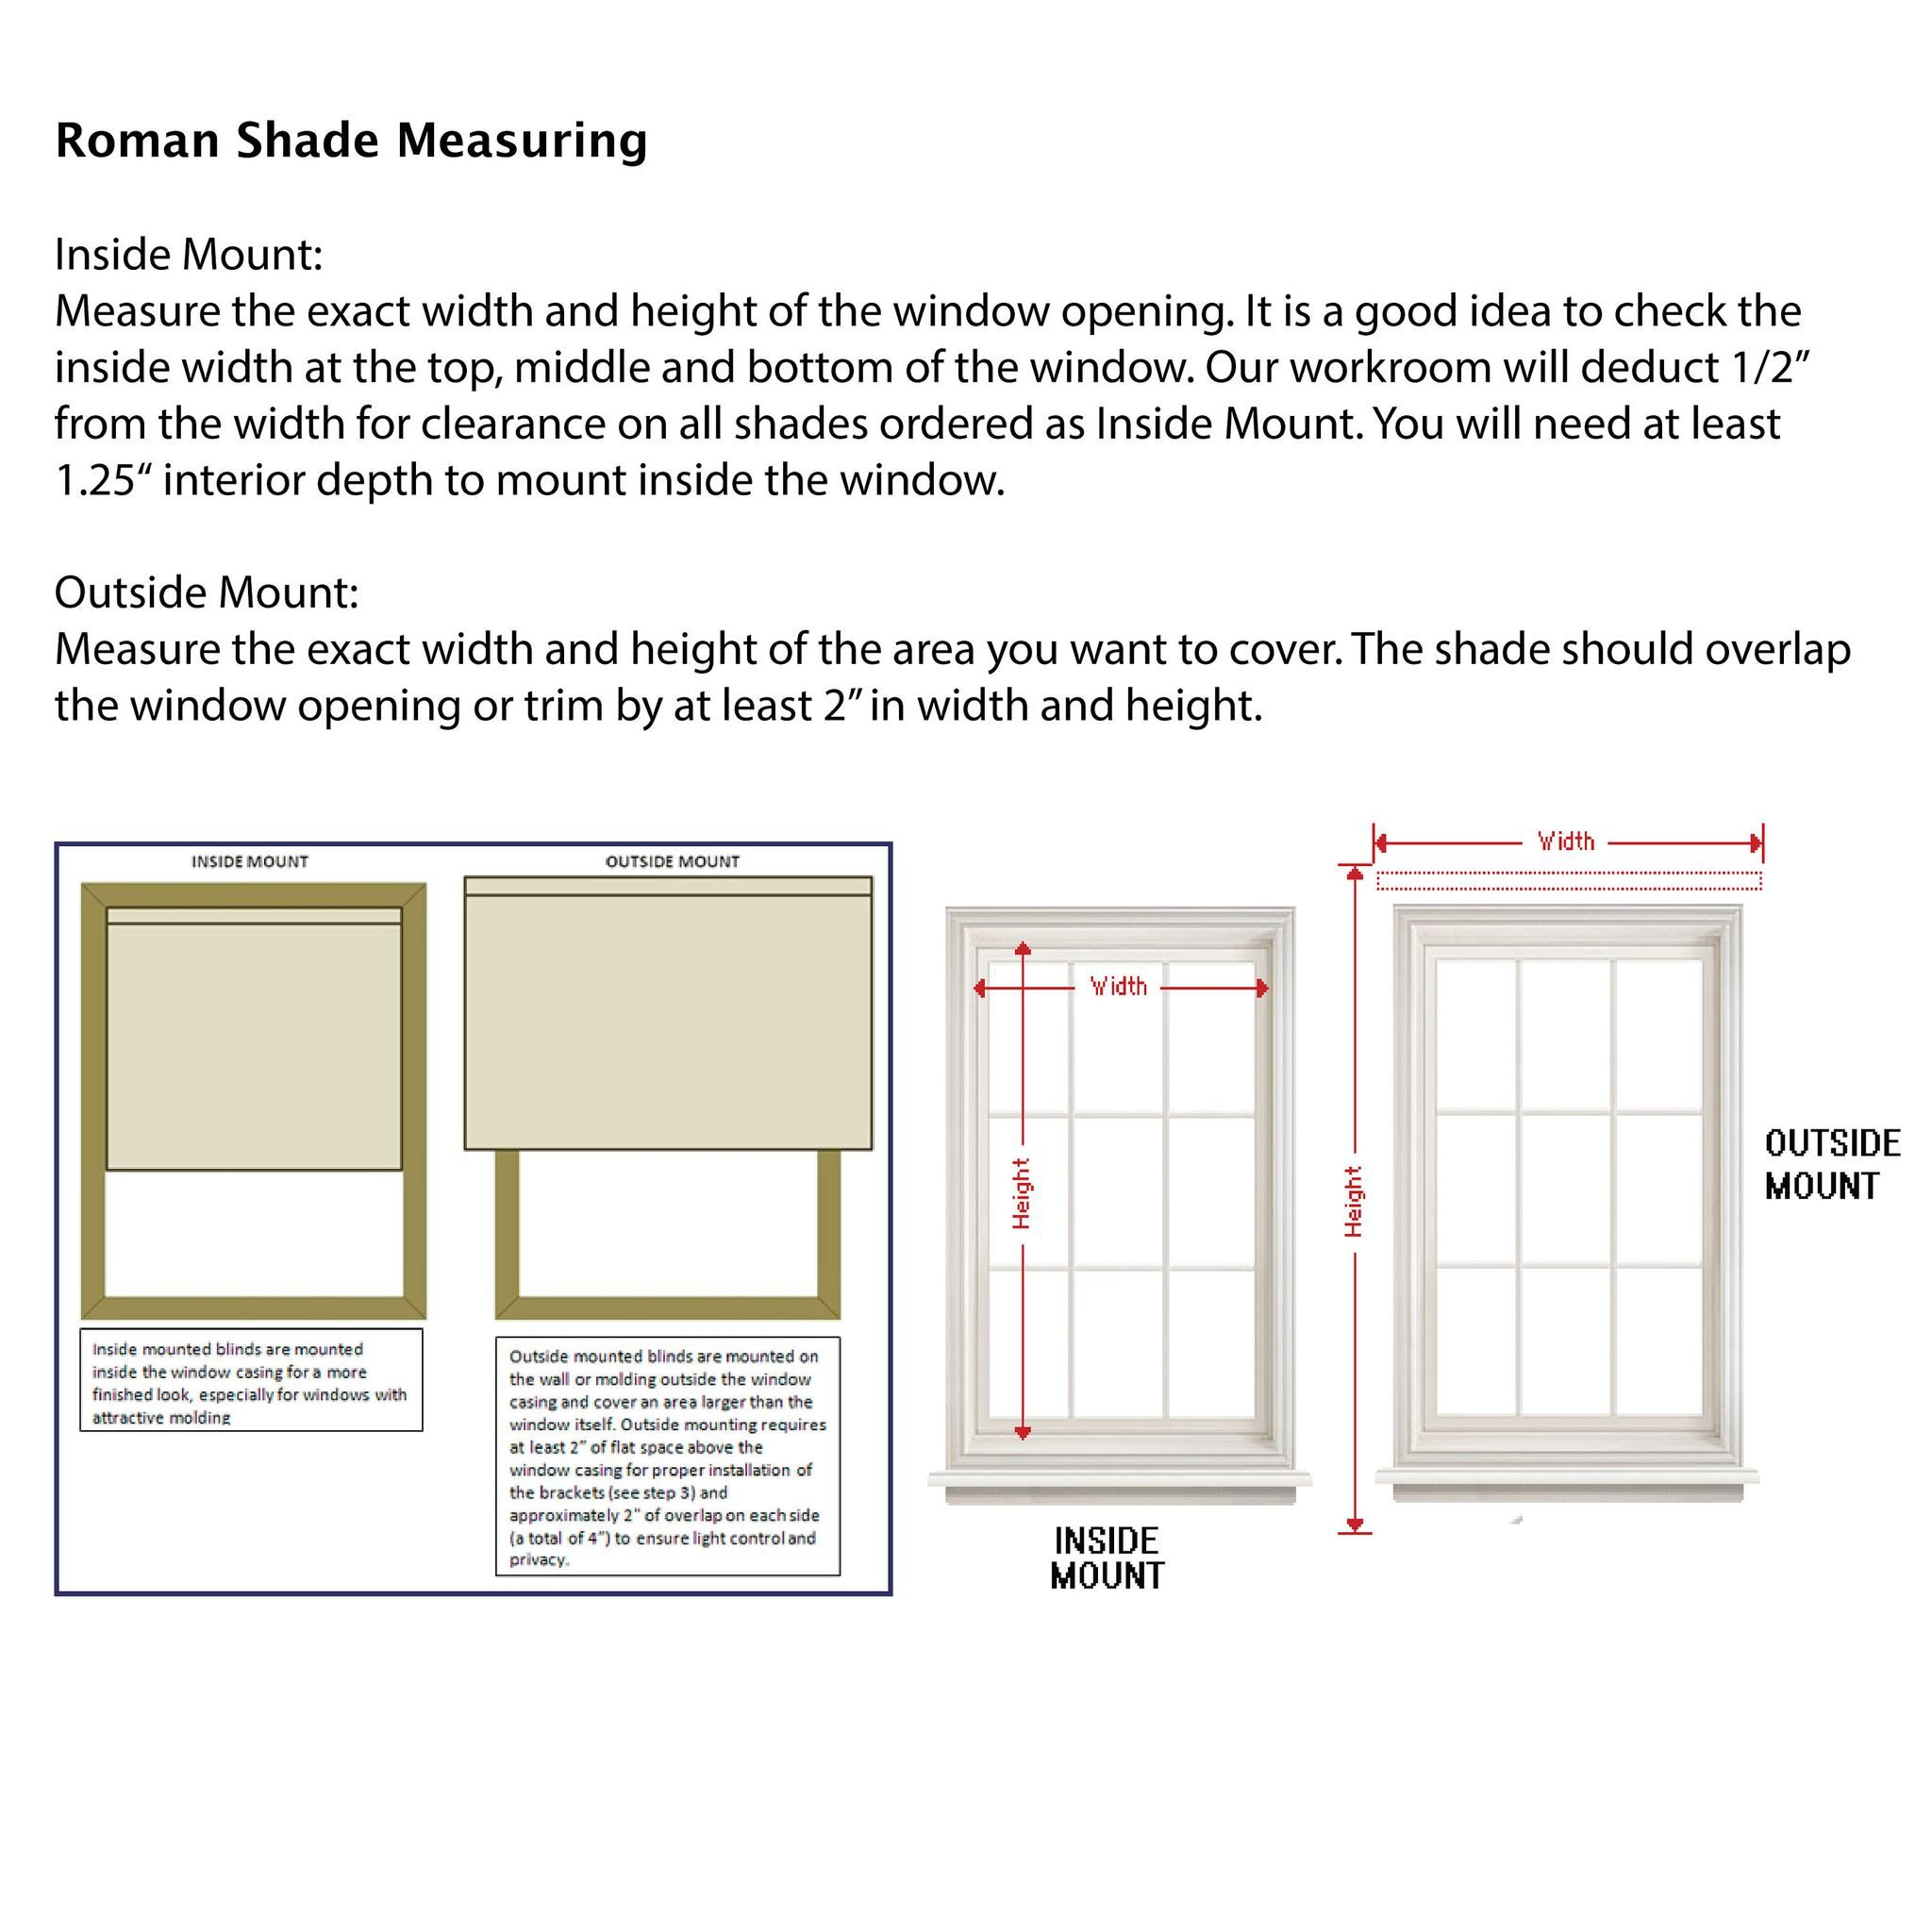 Image Result For Outside Mount Roman Shades Linen Roman Shades Bedroom Shades For French Doors Roman Shades Bathroom